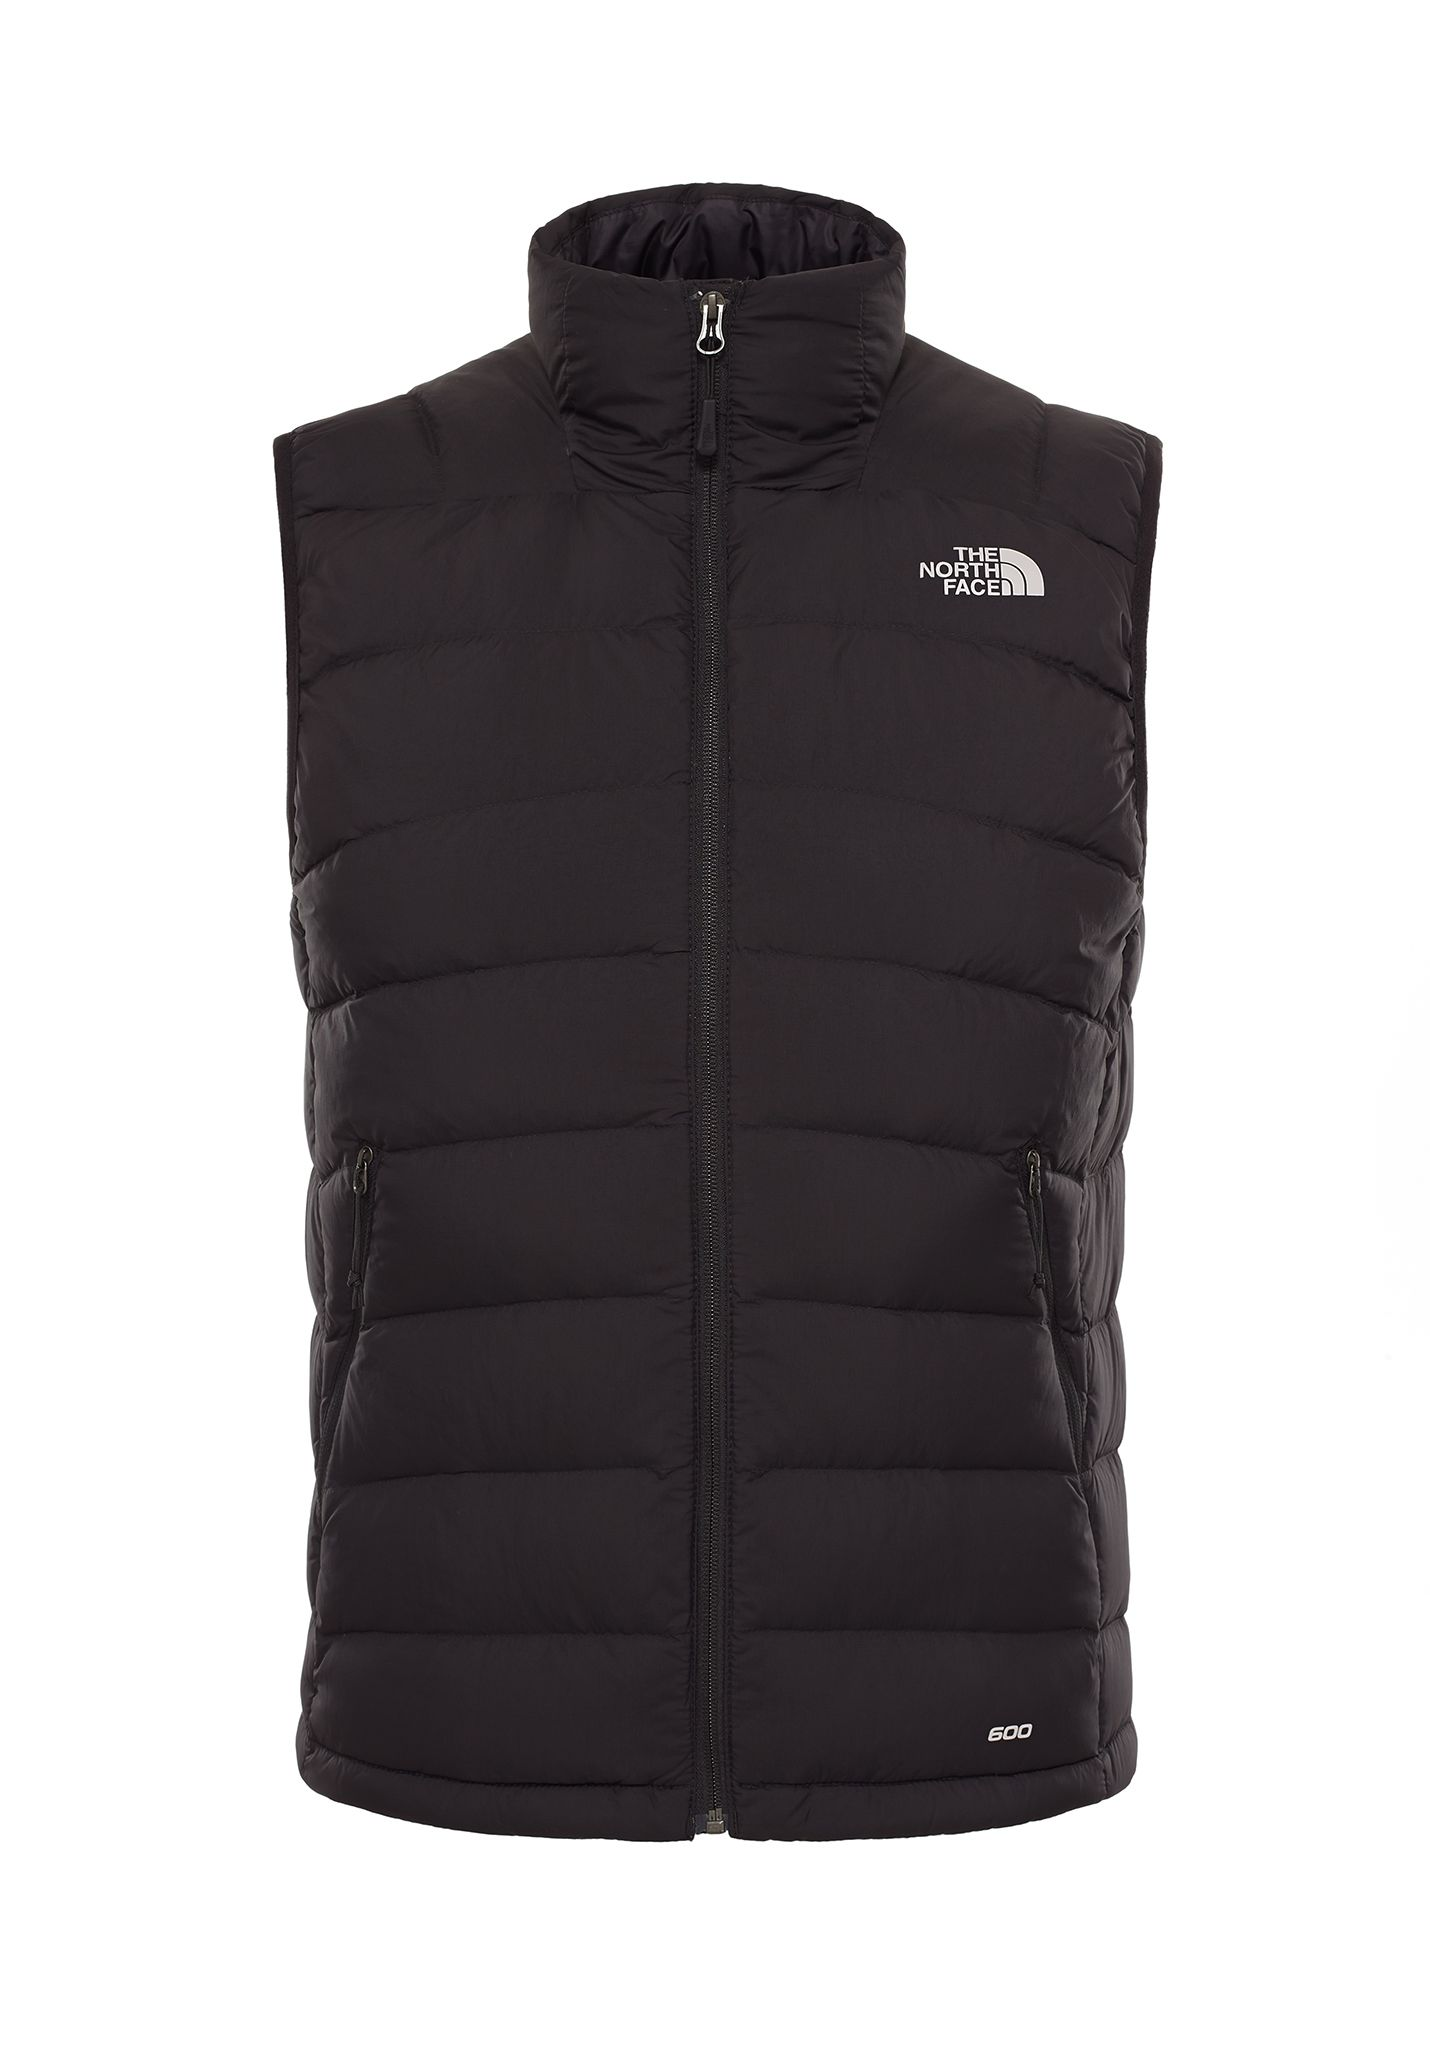 revendeur e1275 8fa45 doudoune sans manche femme the north face